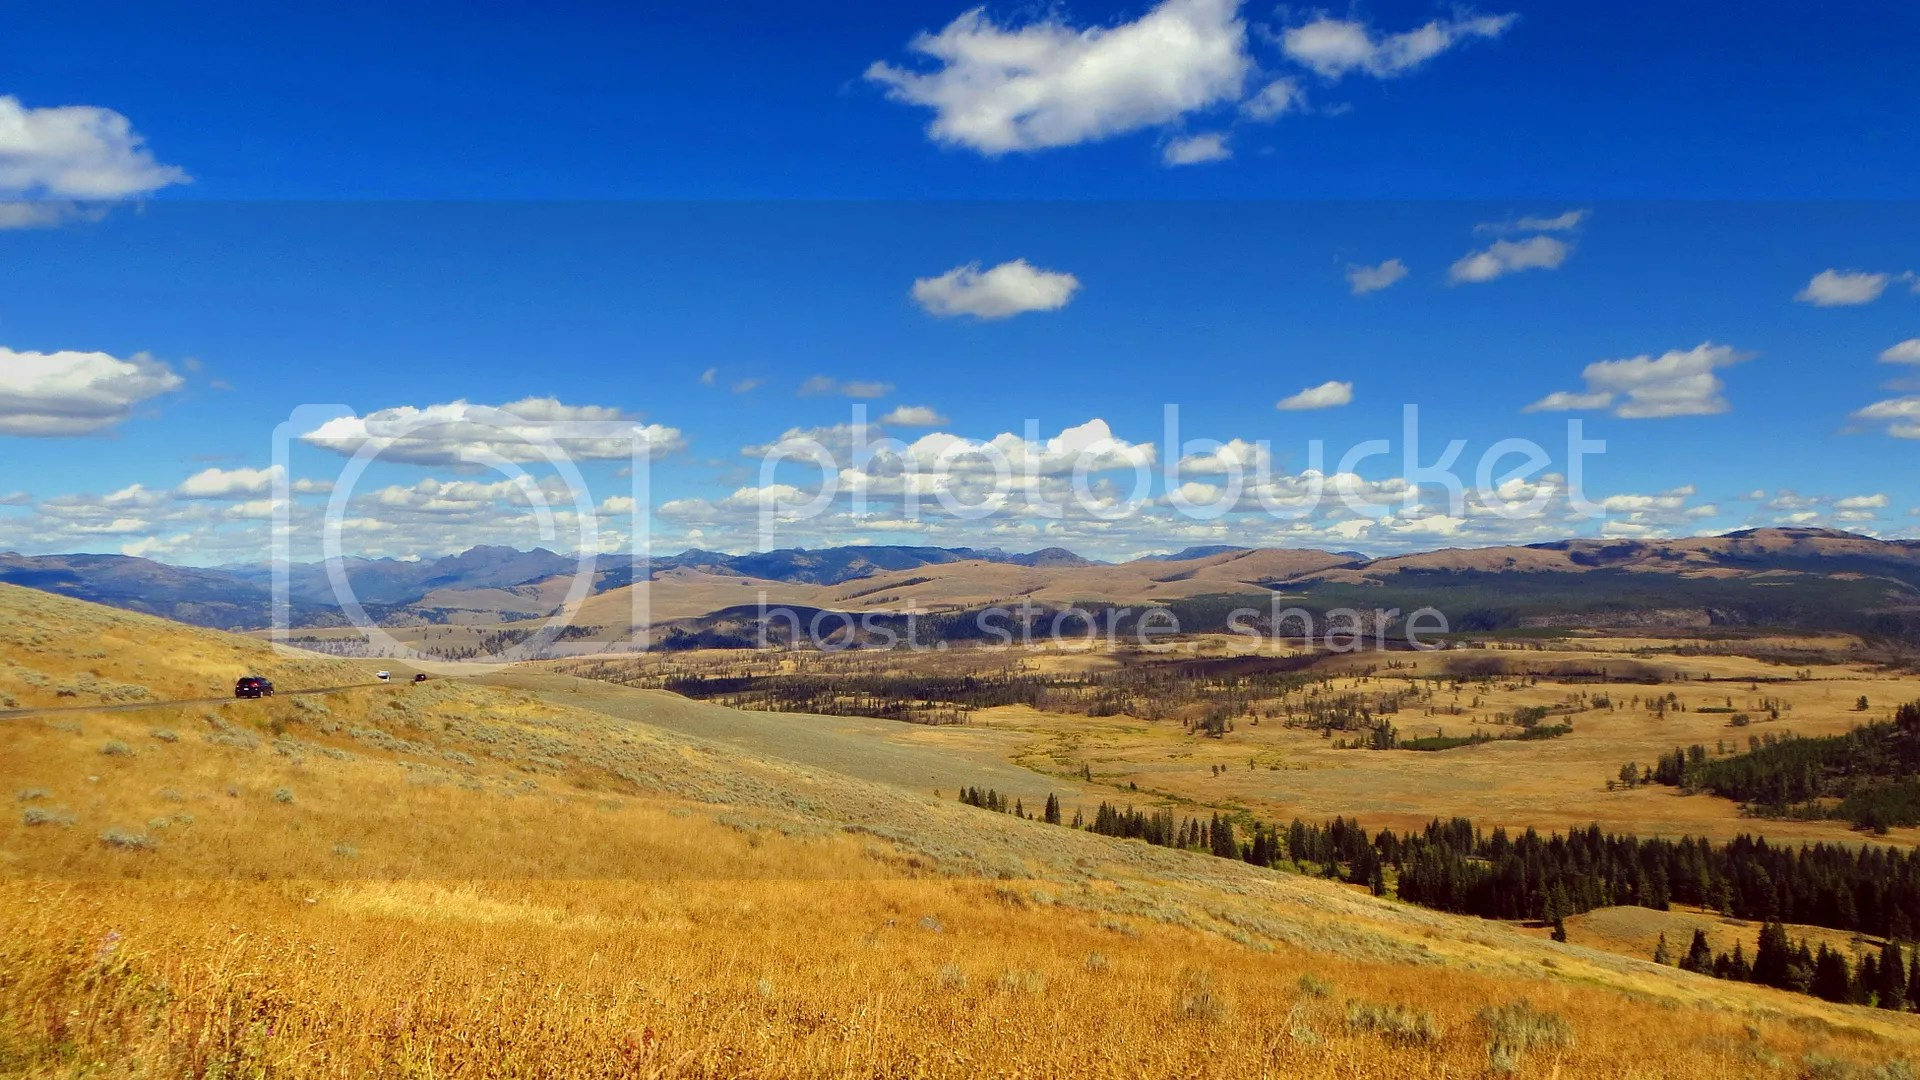 photo YellowstoneValley_tn.jpg